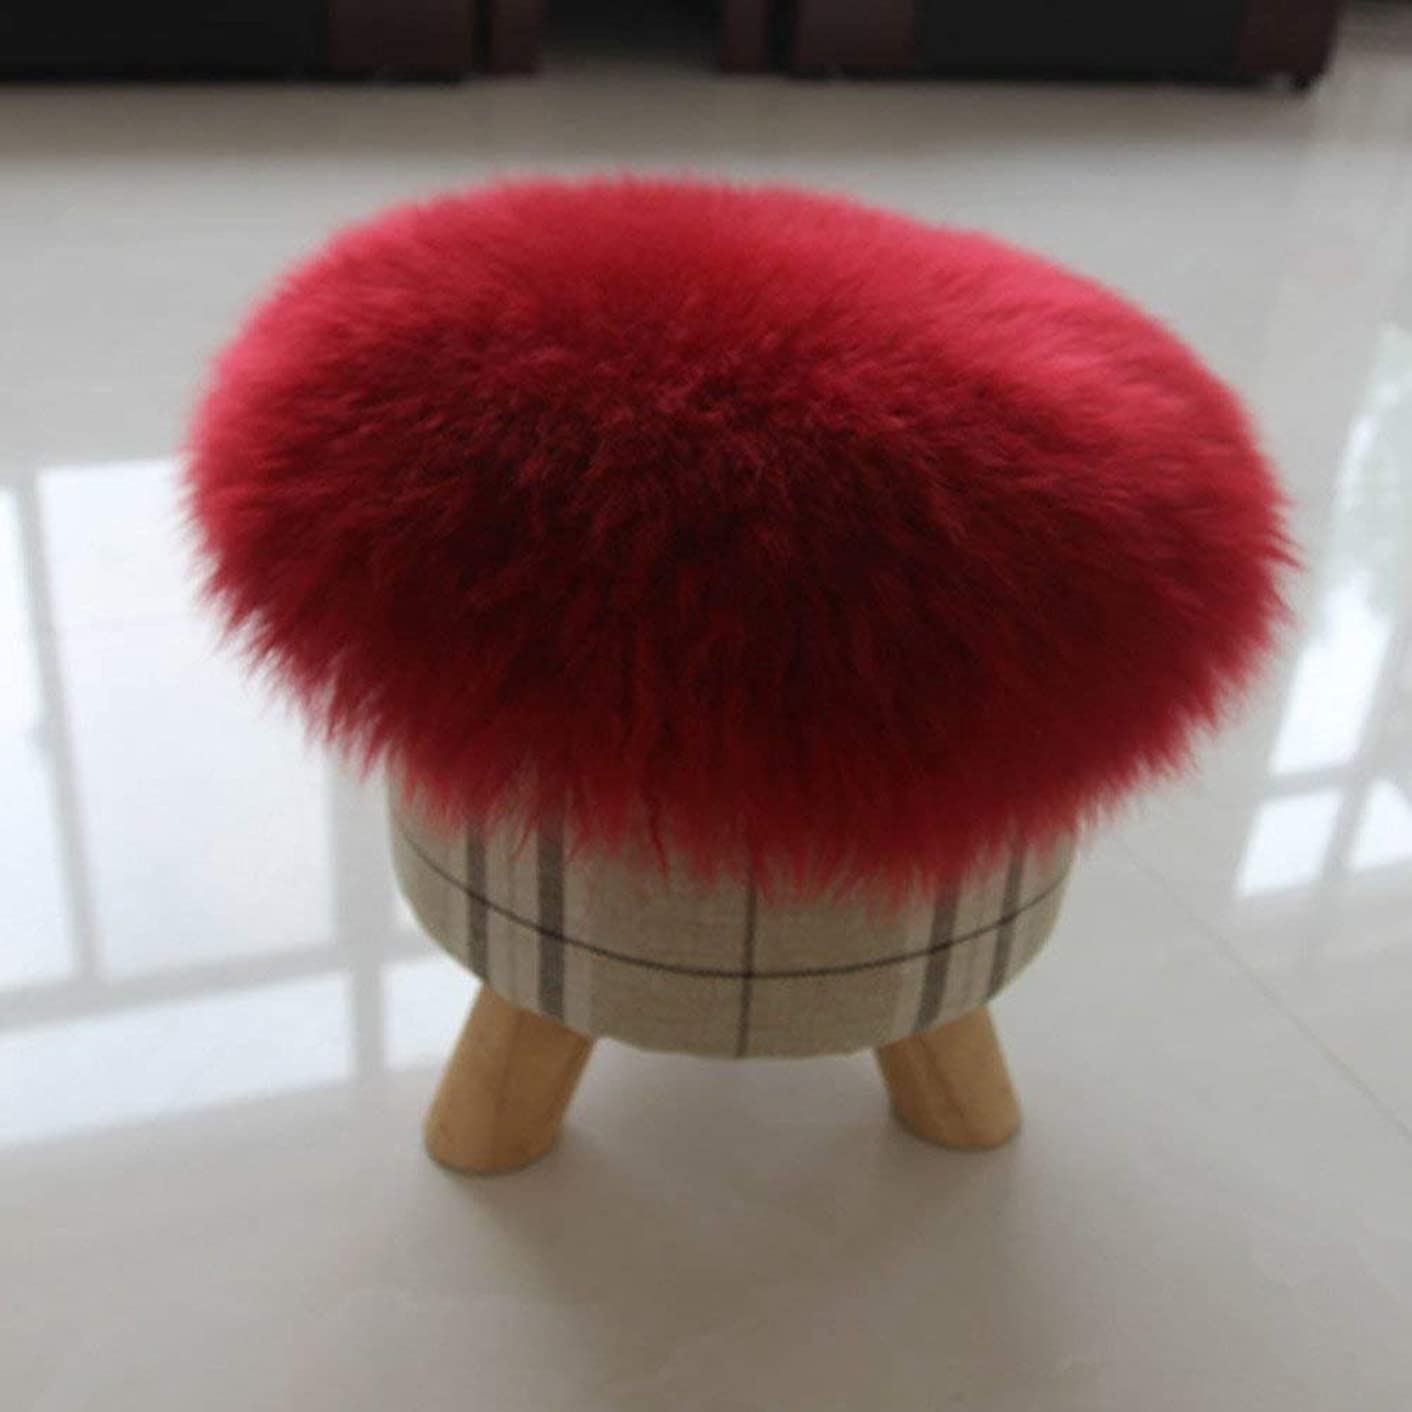 LingGT Pure Color Plush Large Mirrors,Futon Sofa Cushions of Padding Round Seat Stool Fluffy Shaggy-Red Wine 120X120Cm(47X47Cm) (Color : -, Size : -)